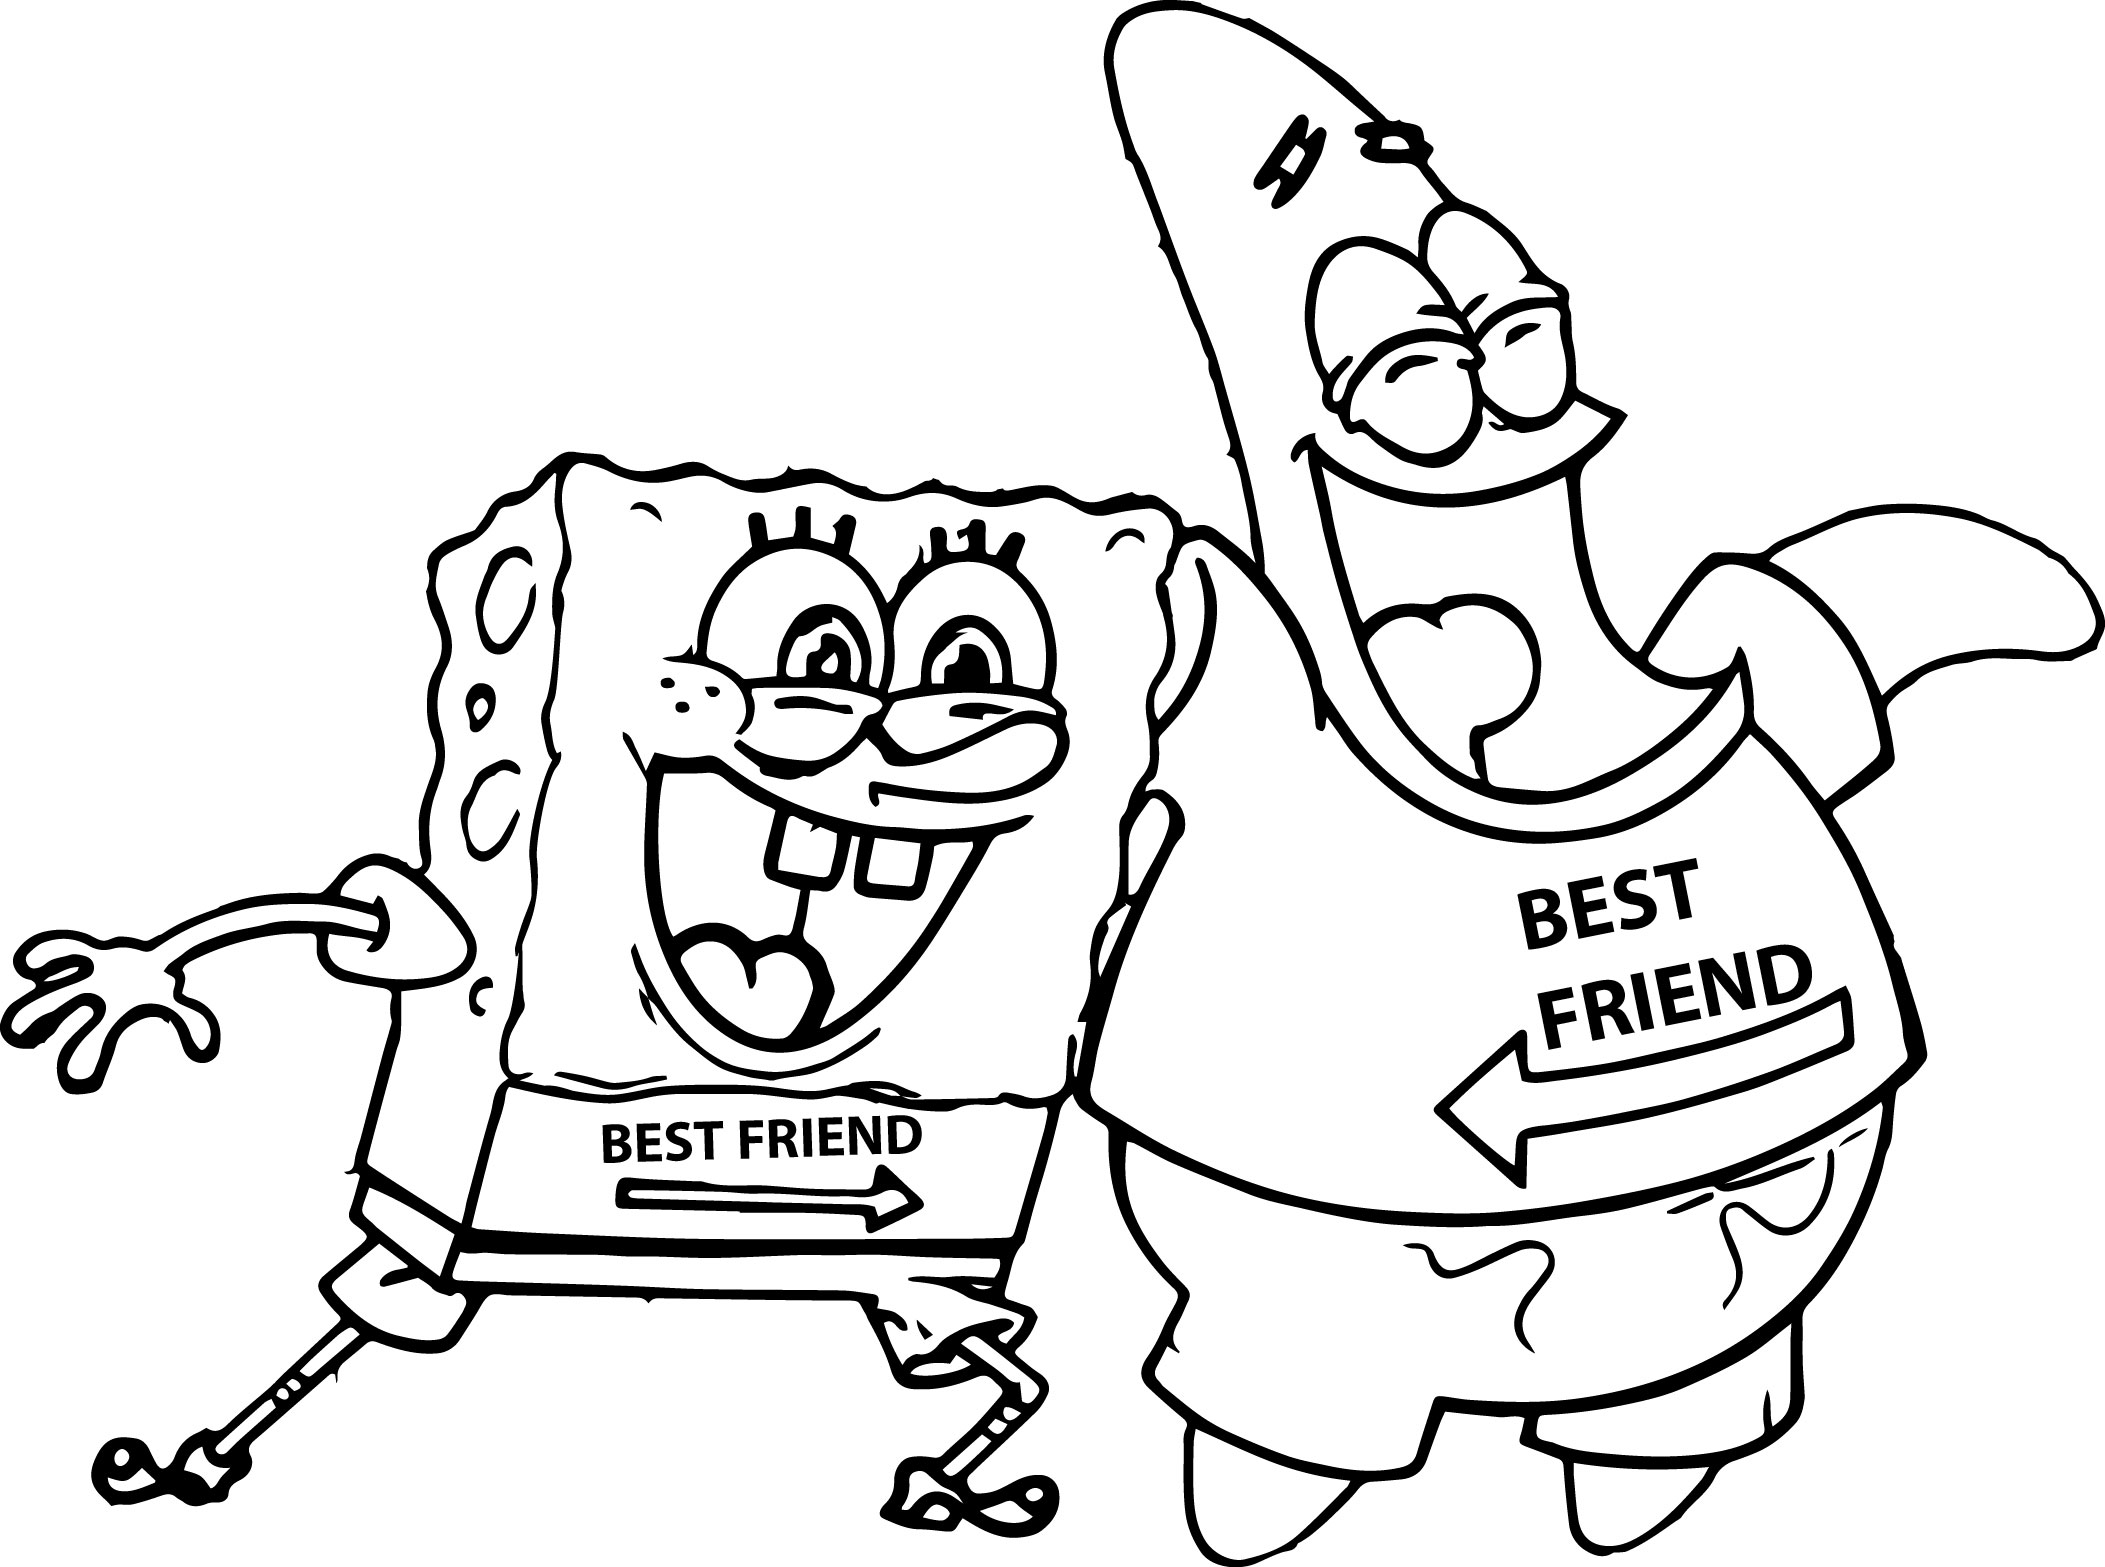 Spongebob Characters Drawing at GetDrawings.com | Free for personal ...